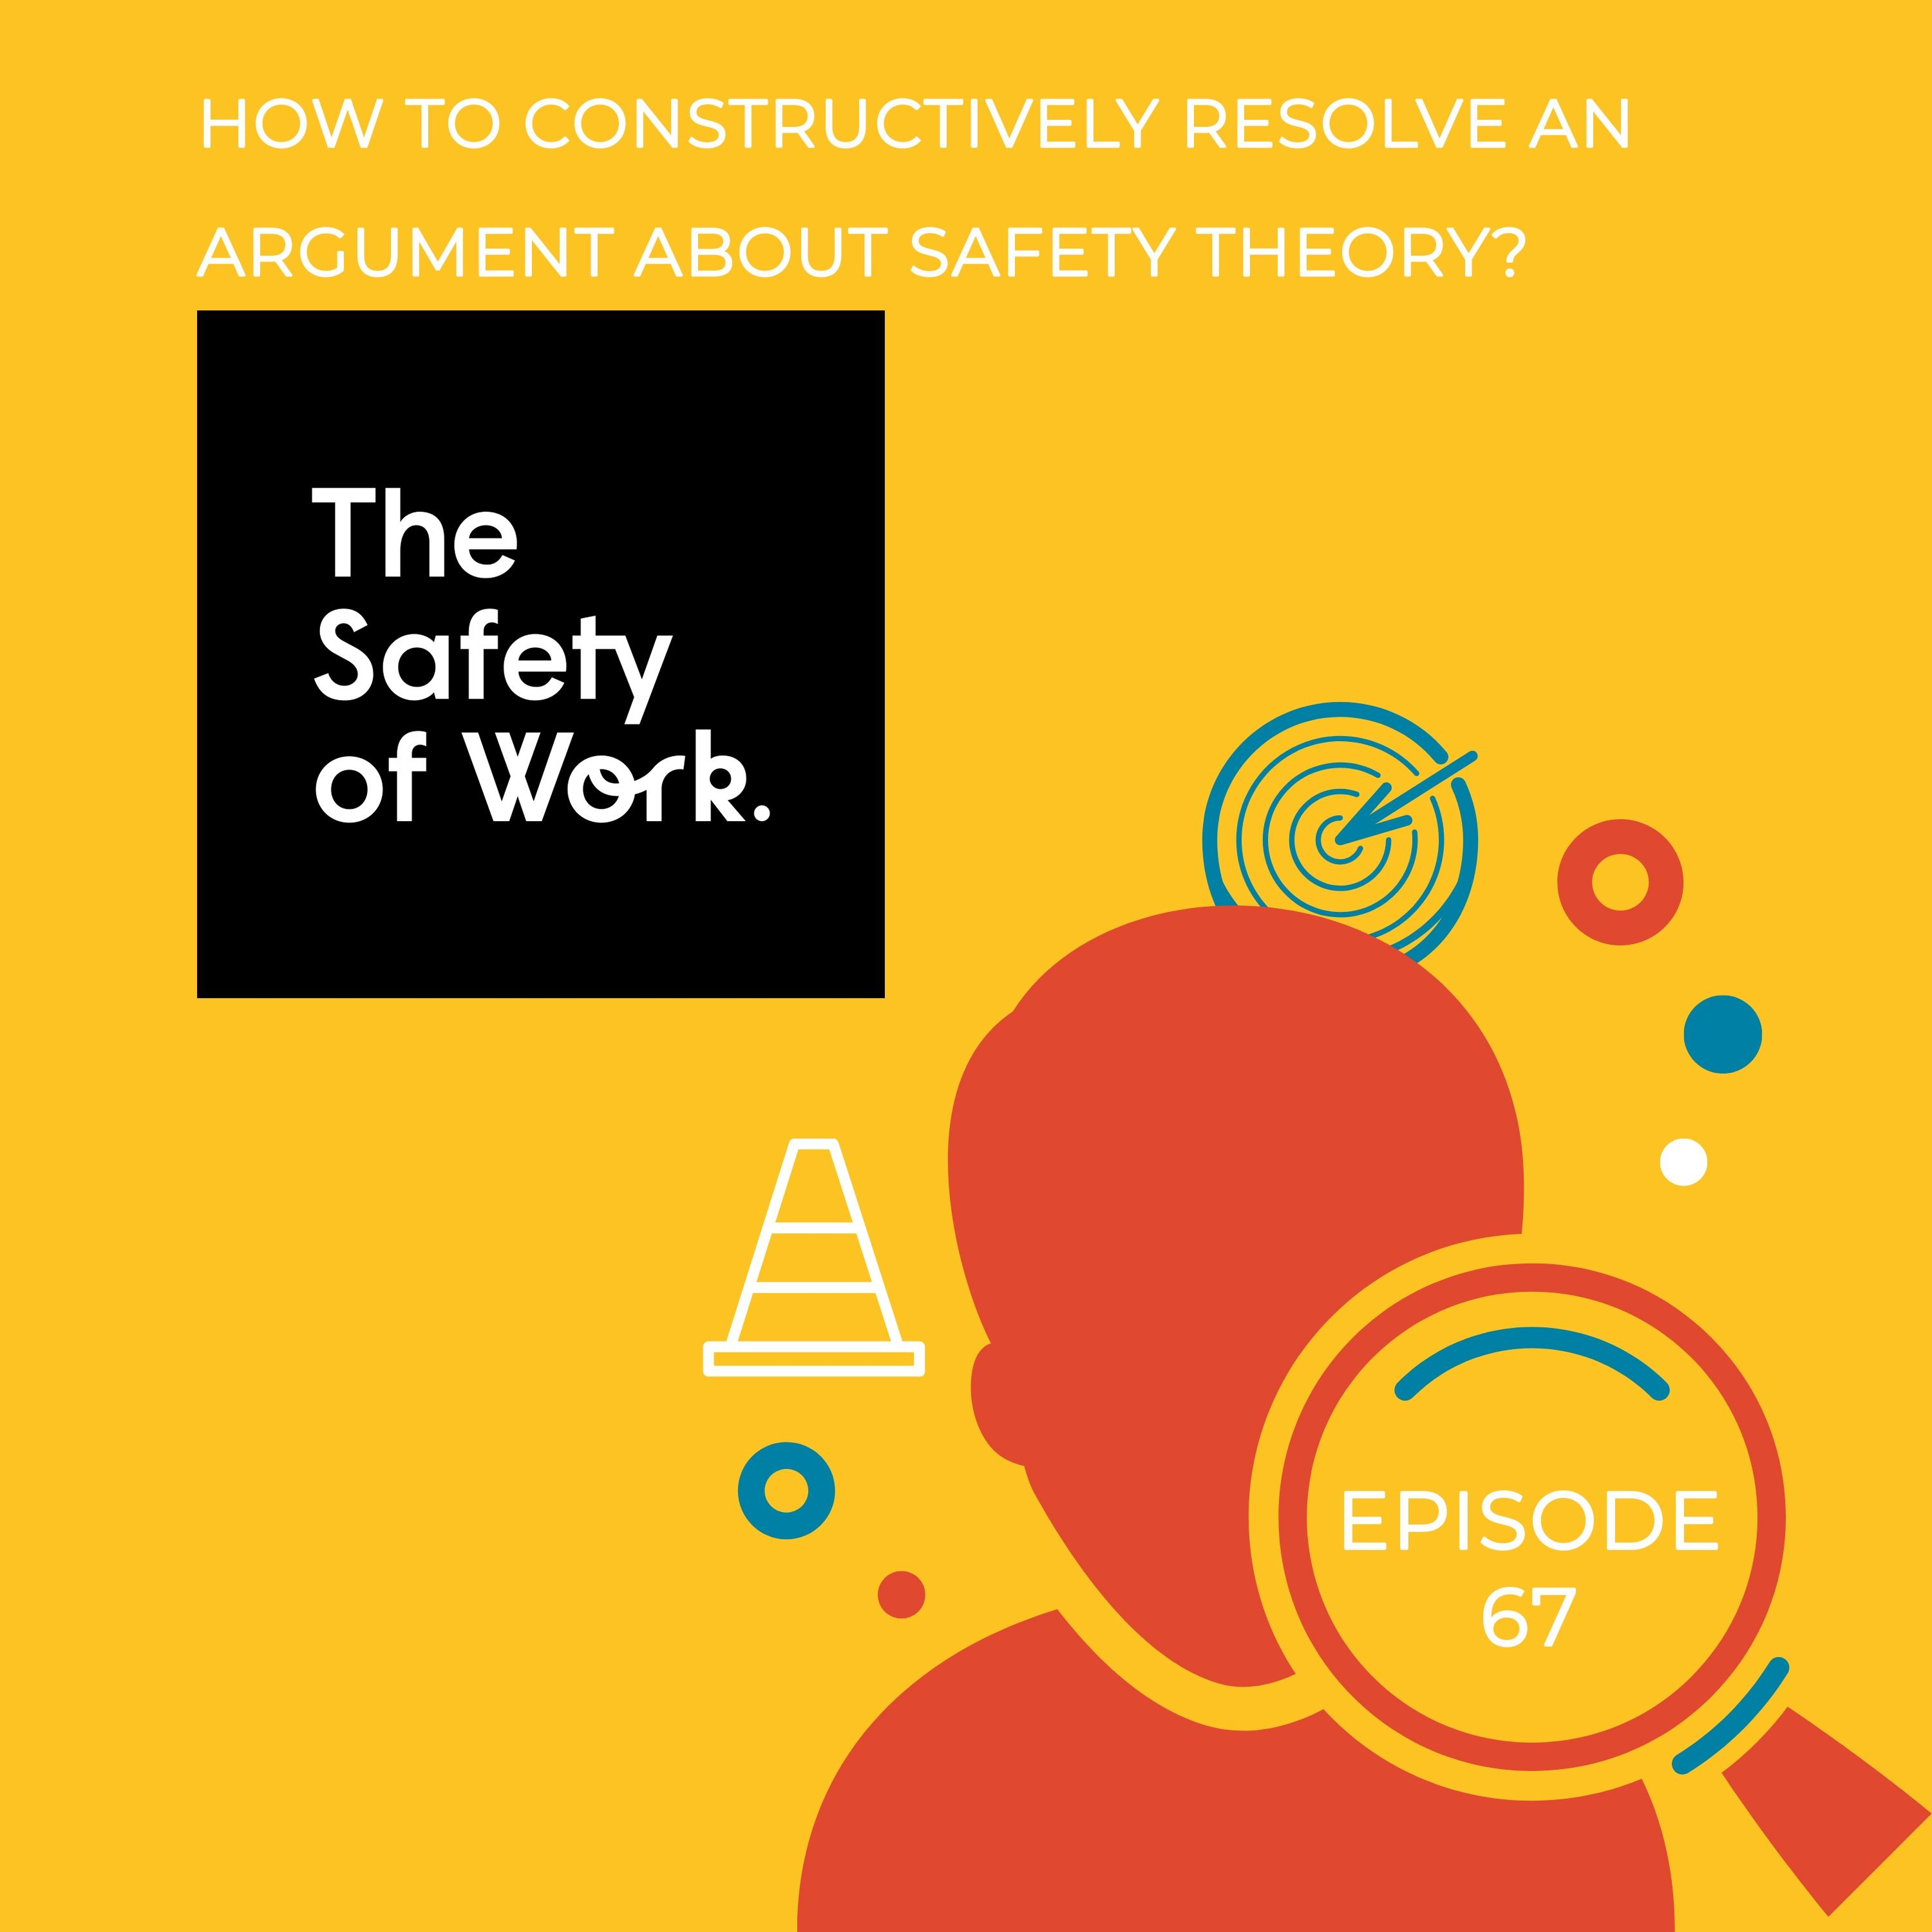 Ep.67 How to constructively resolve an argument about safety theory?